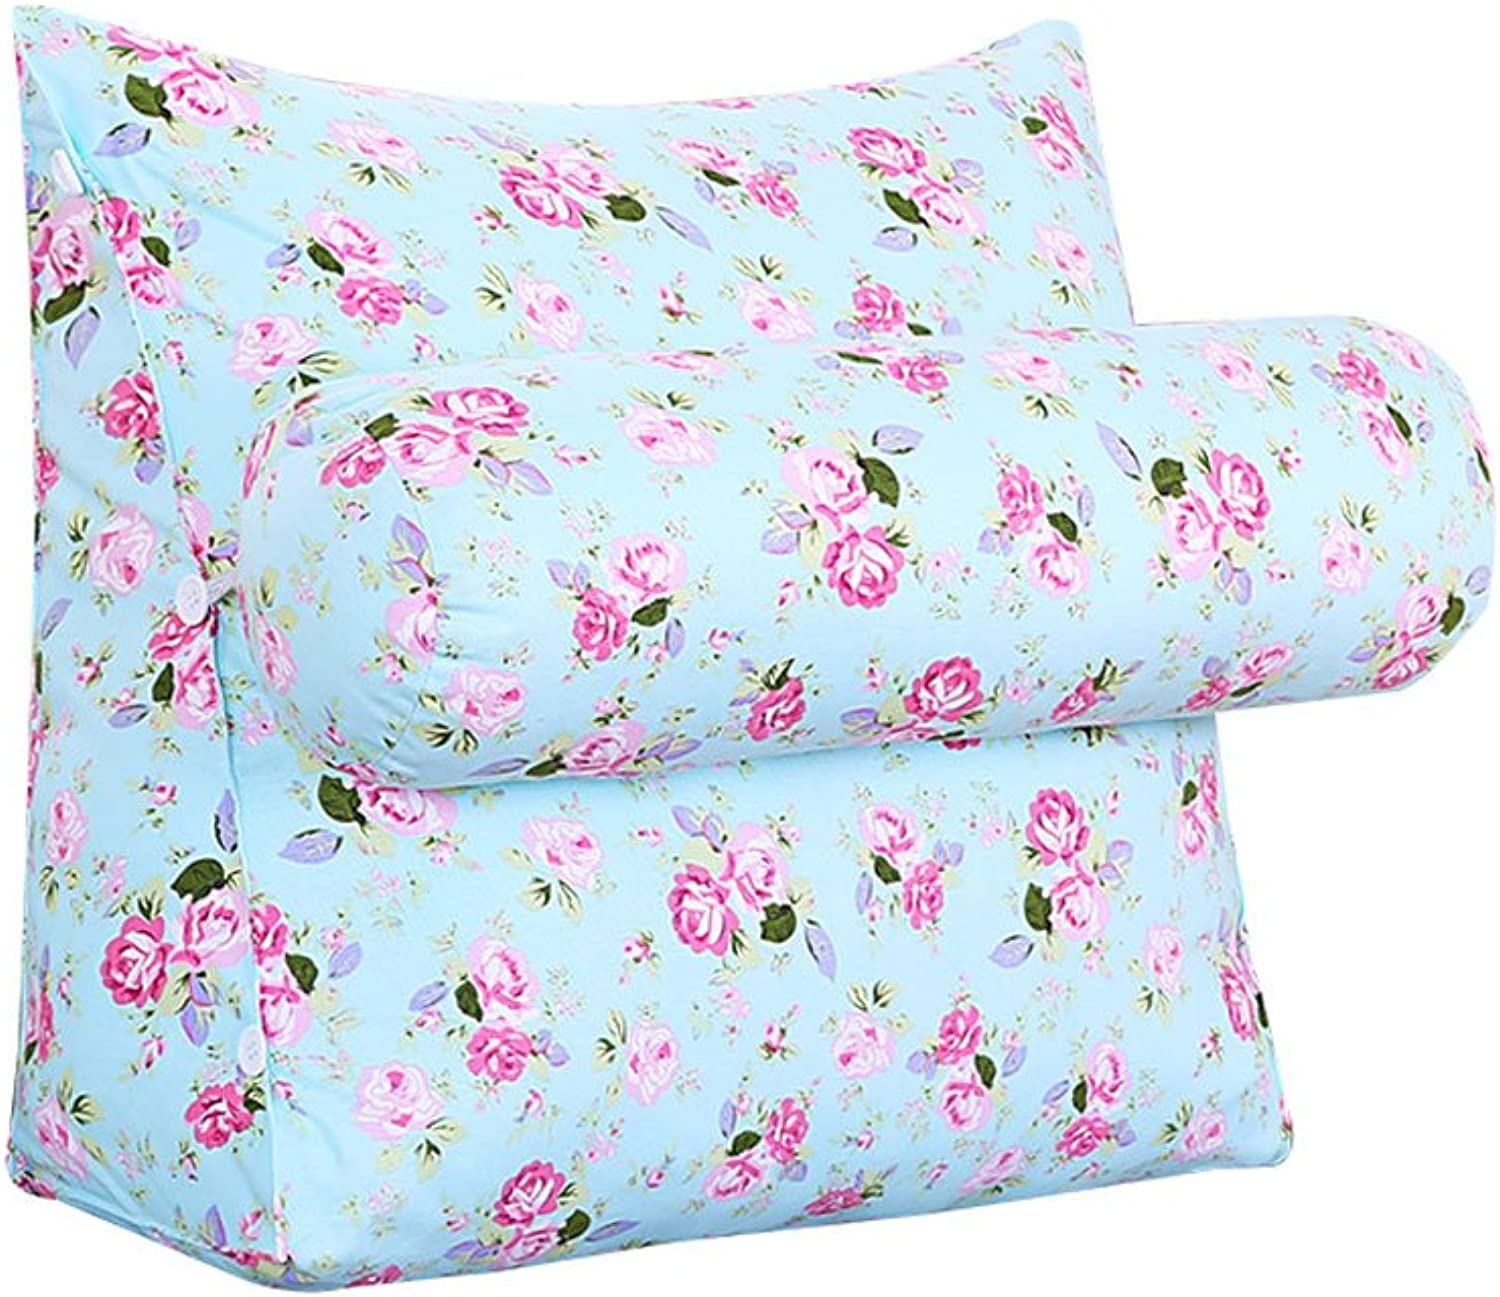 DDSS Bed cushion Sofa Bed Headrest Triangle Bedside Pillow with Headrest Bay Window Cushion Back Office Pillow Lumbar Pillow Backrest Waist Pads Flower Pattern  -